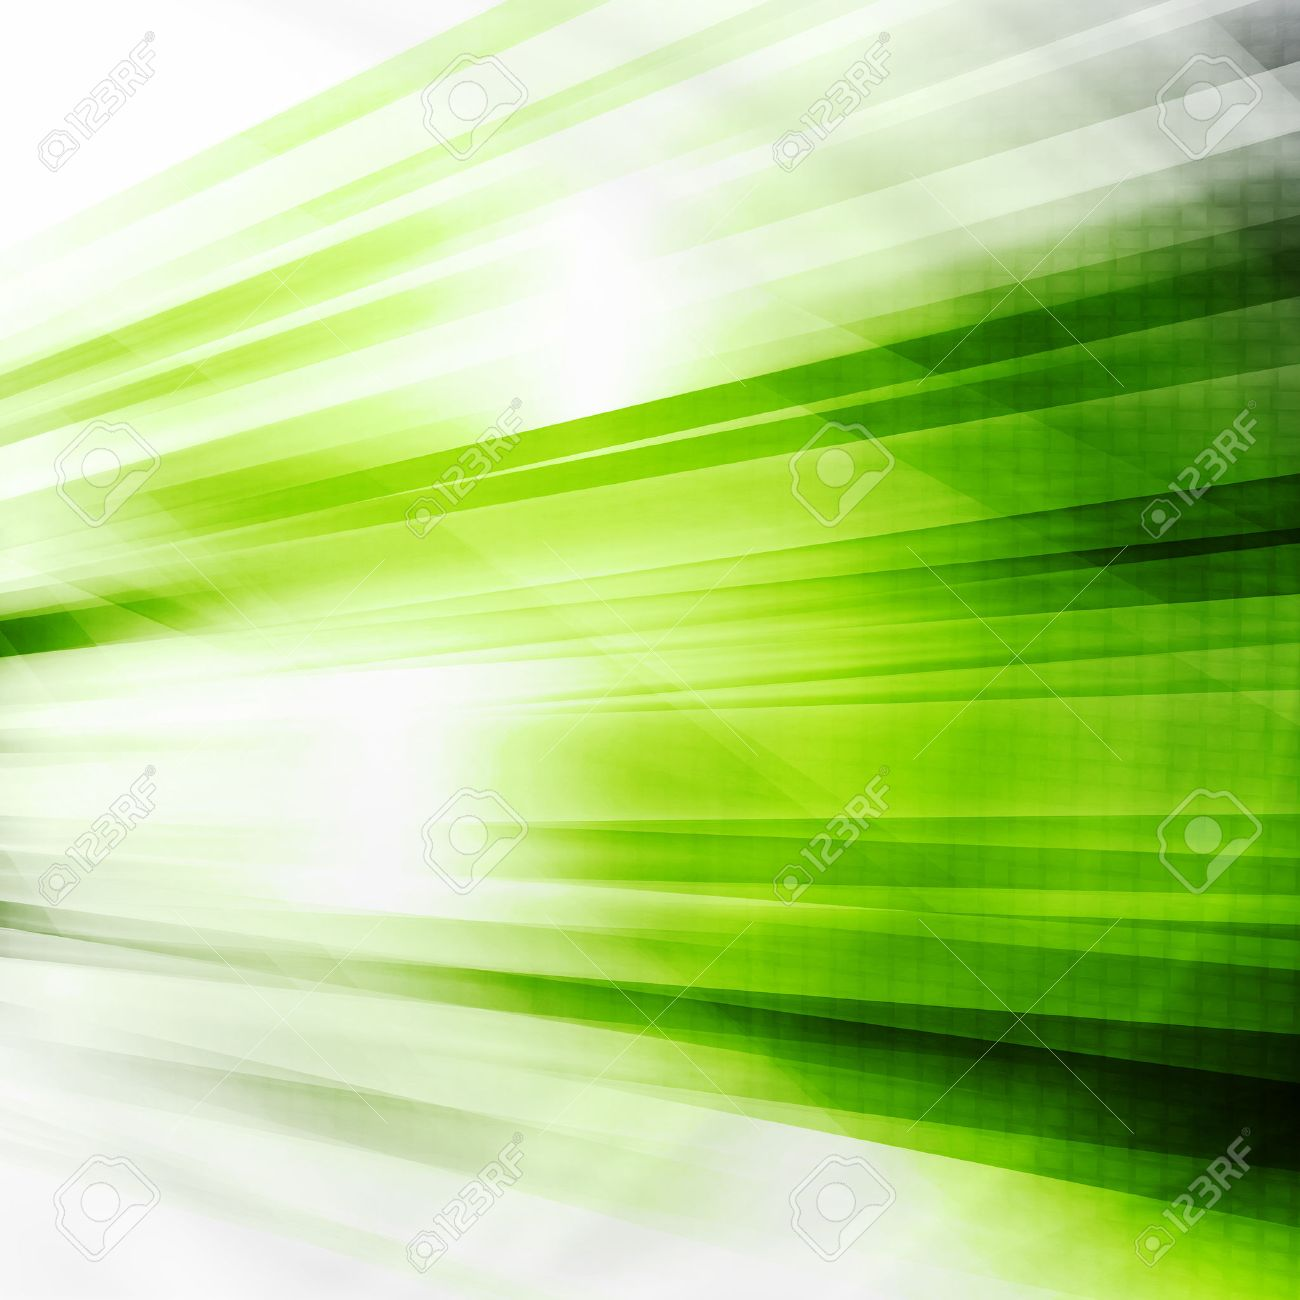 Green Abstract Background Design - 23040365